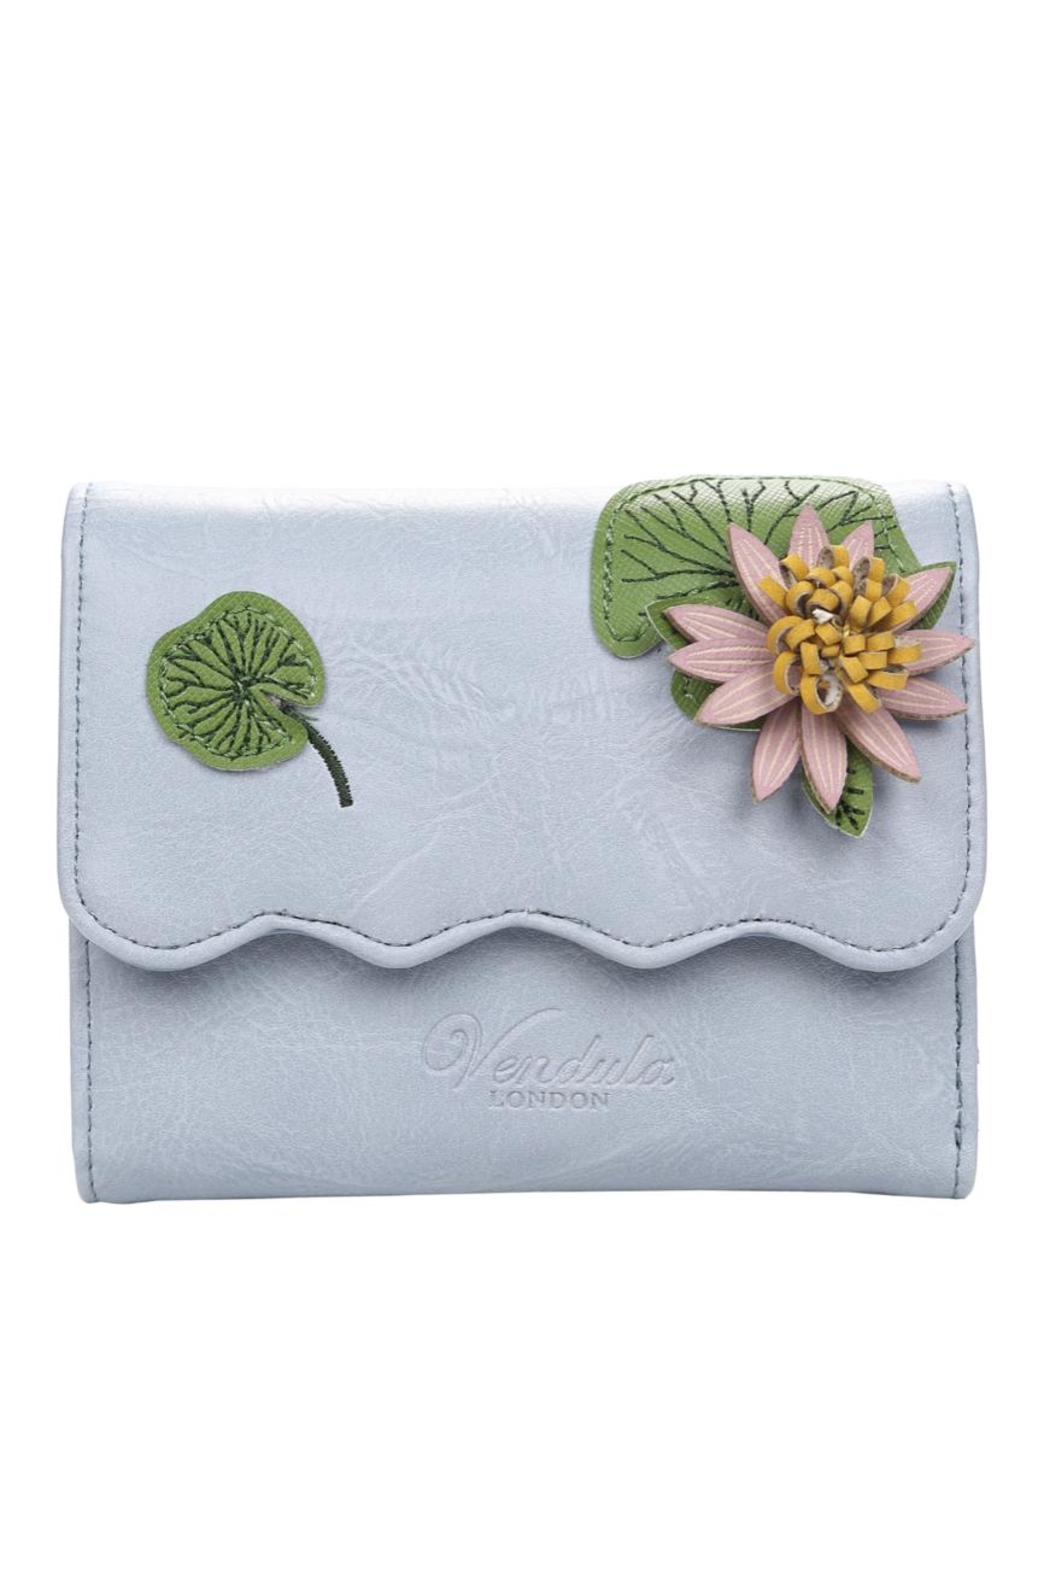 Vendula London Water-Lily Flap Wallet - Main Image